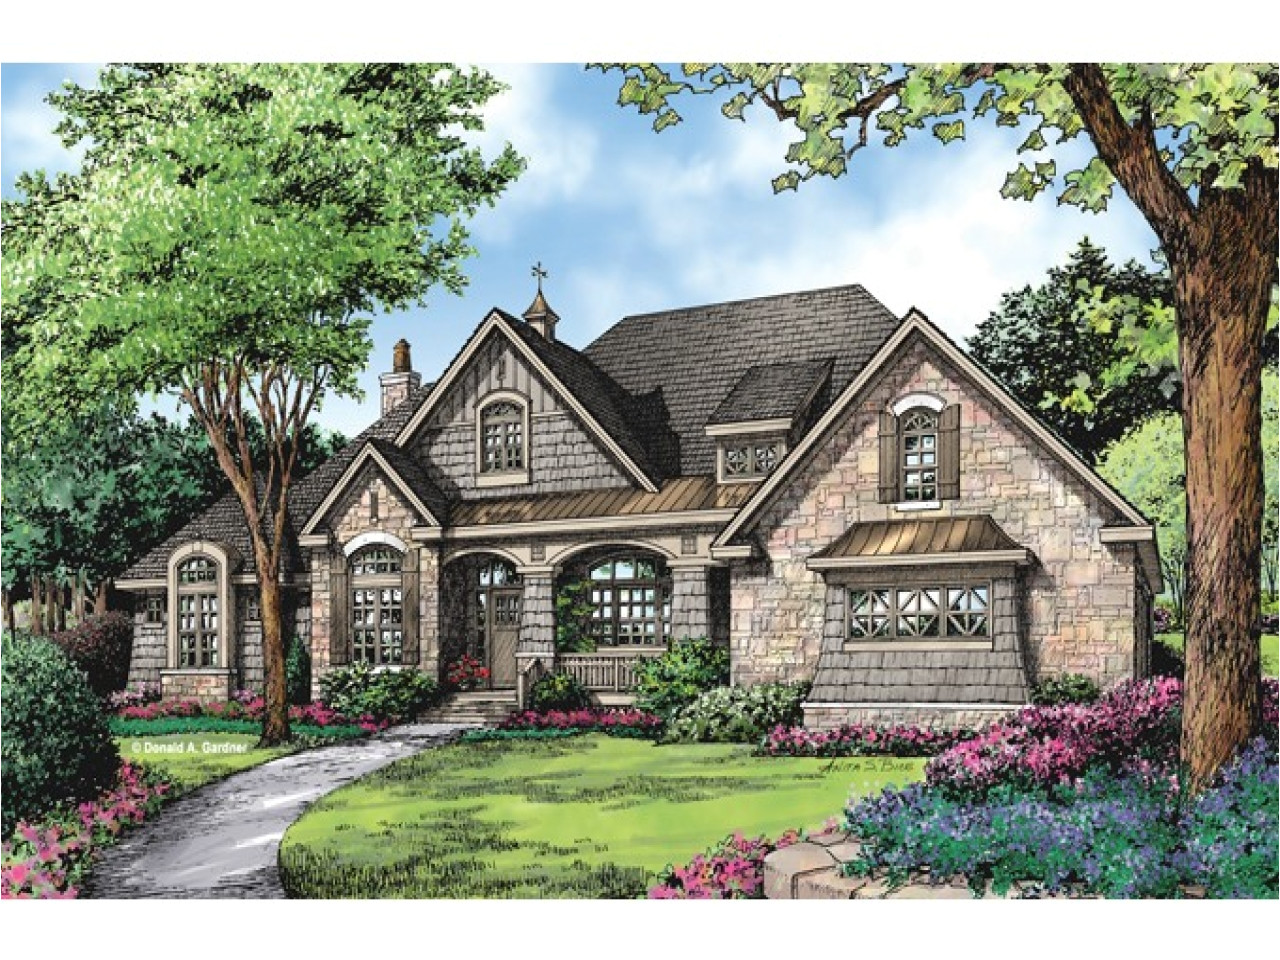 b70e467f7bf83a2c donald gardner craftsman house plans house floor plans donald gardner